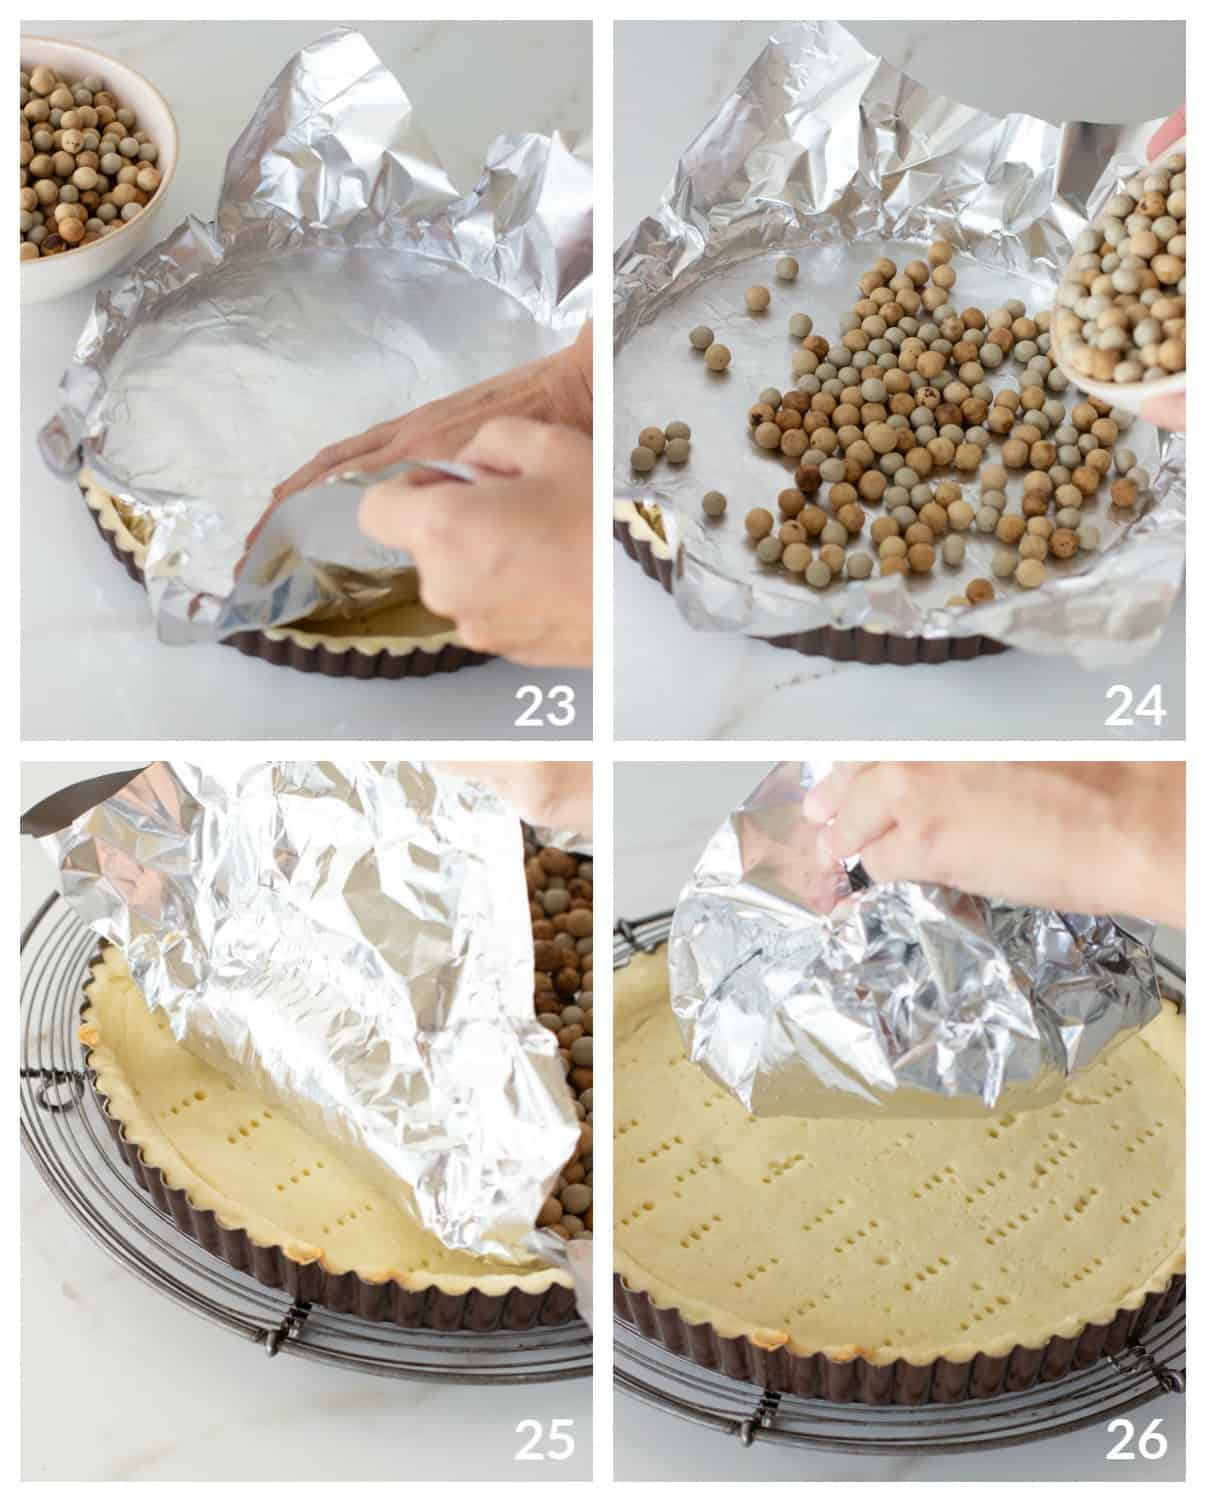 Blind baking image collage; aluminum foil with pie weights, baked tart on wire rack